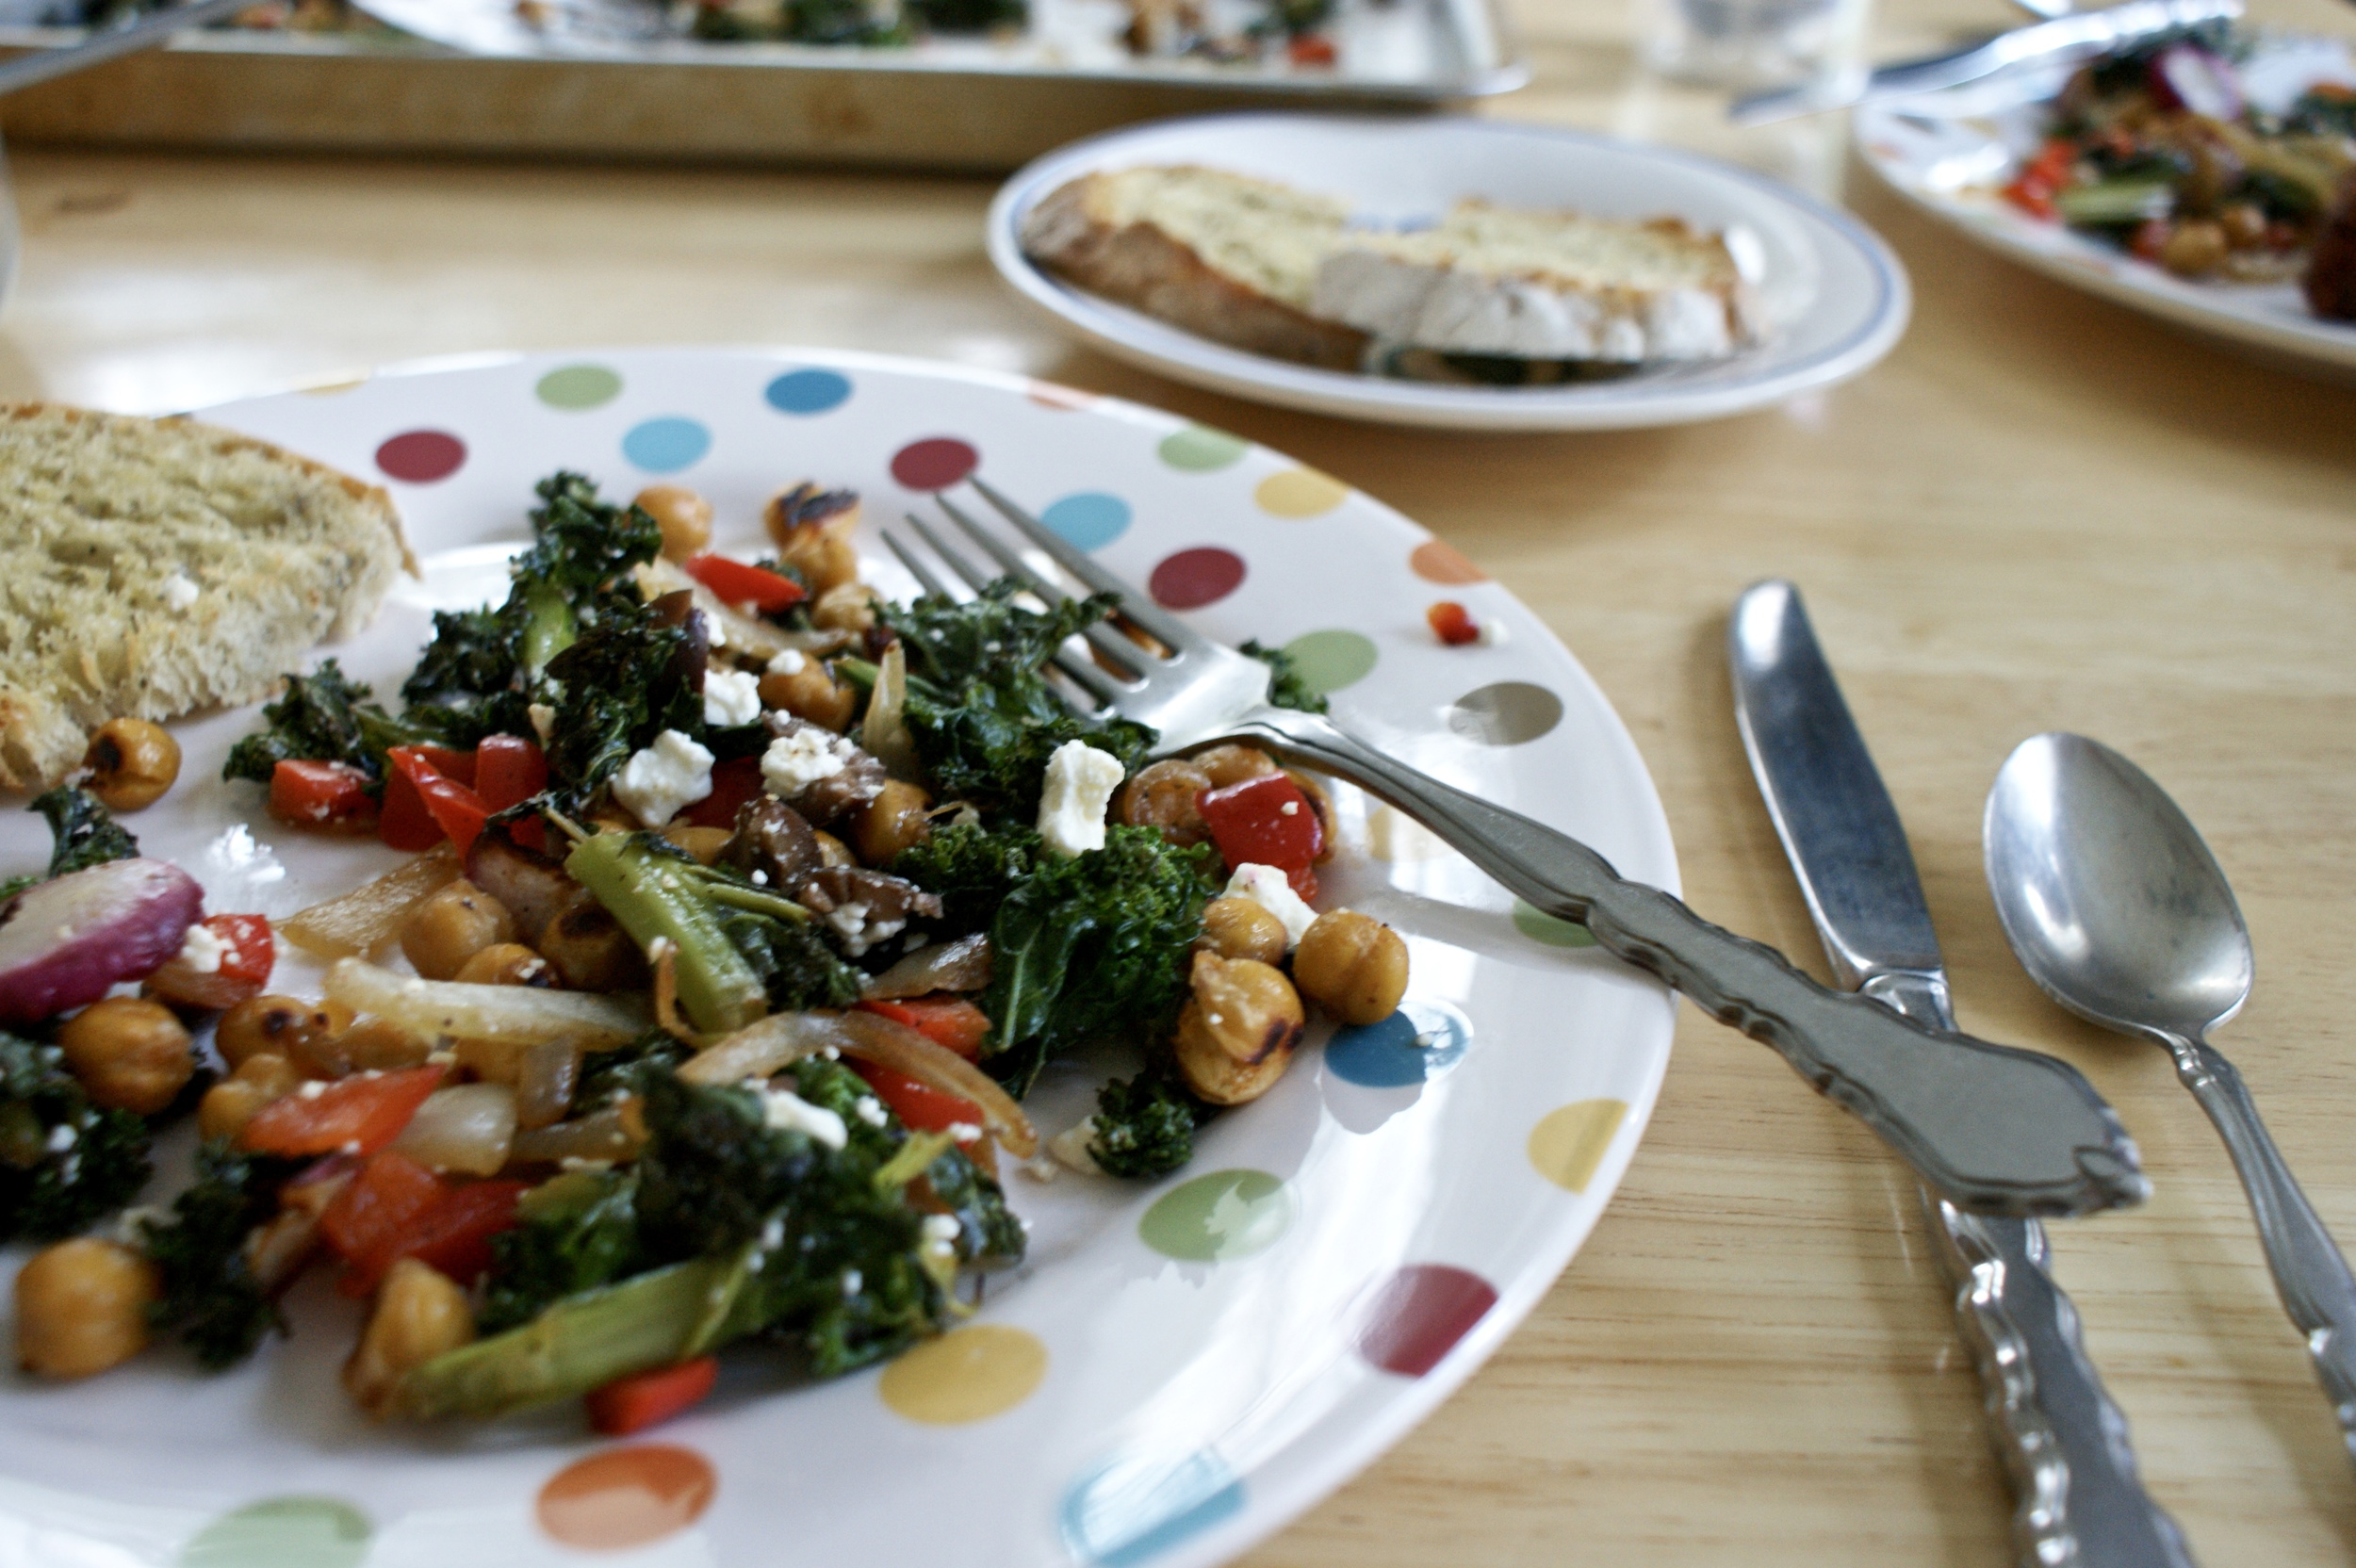 kale + vegetable sauté with crispy garbanzos, olives, + feta, served with Erin's homemade bread + olive oil.